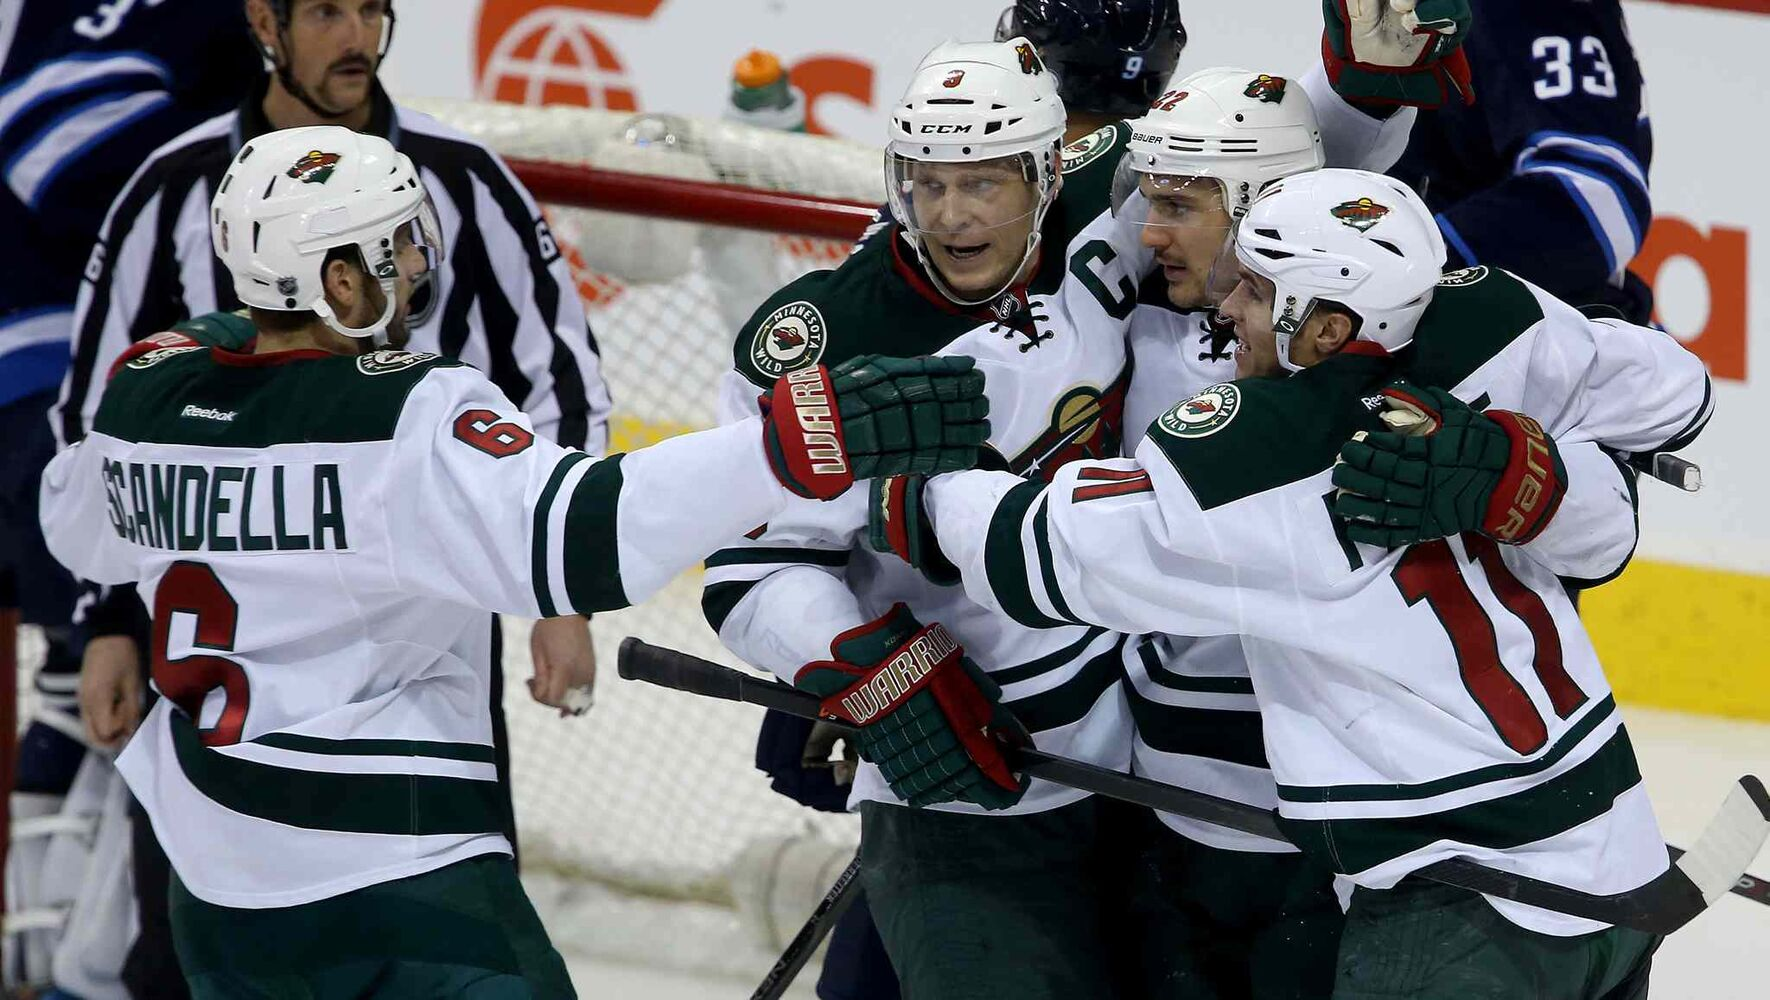 Minnesota Wild skaters Marco Scandella (left), Mikko Koivu (centre left), Nino Niederreiter (centre right) and Zach Parise celebrate after Niederreiter scored during the third period. (TREVOR HAGAN / WINNIPEG FREE PRESS)